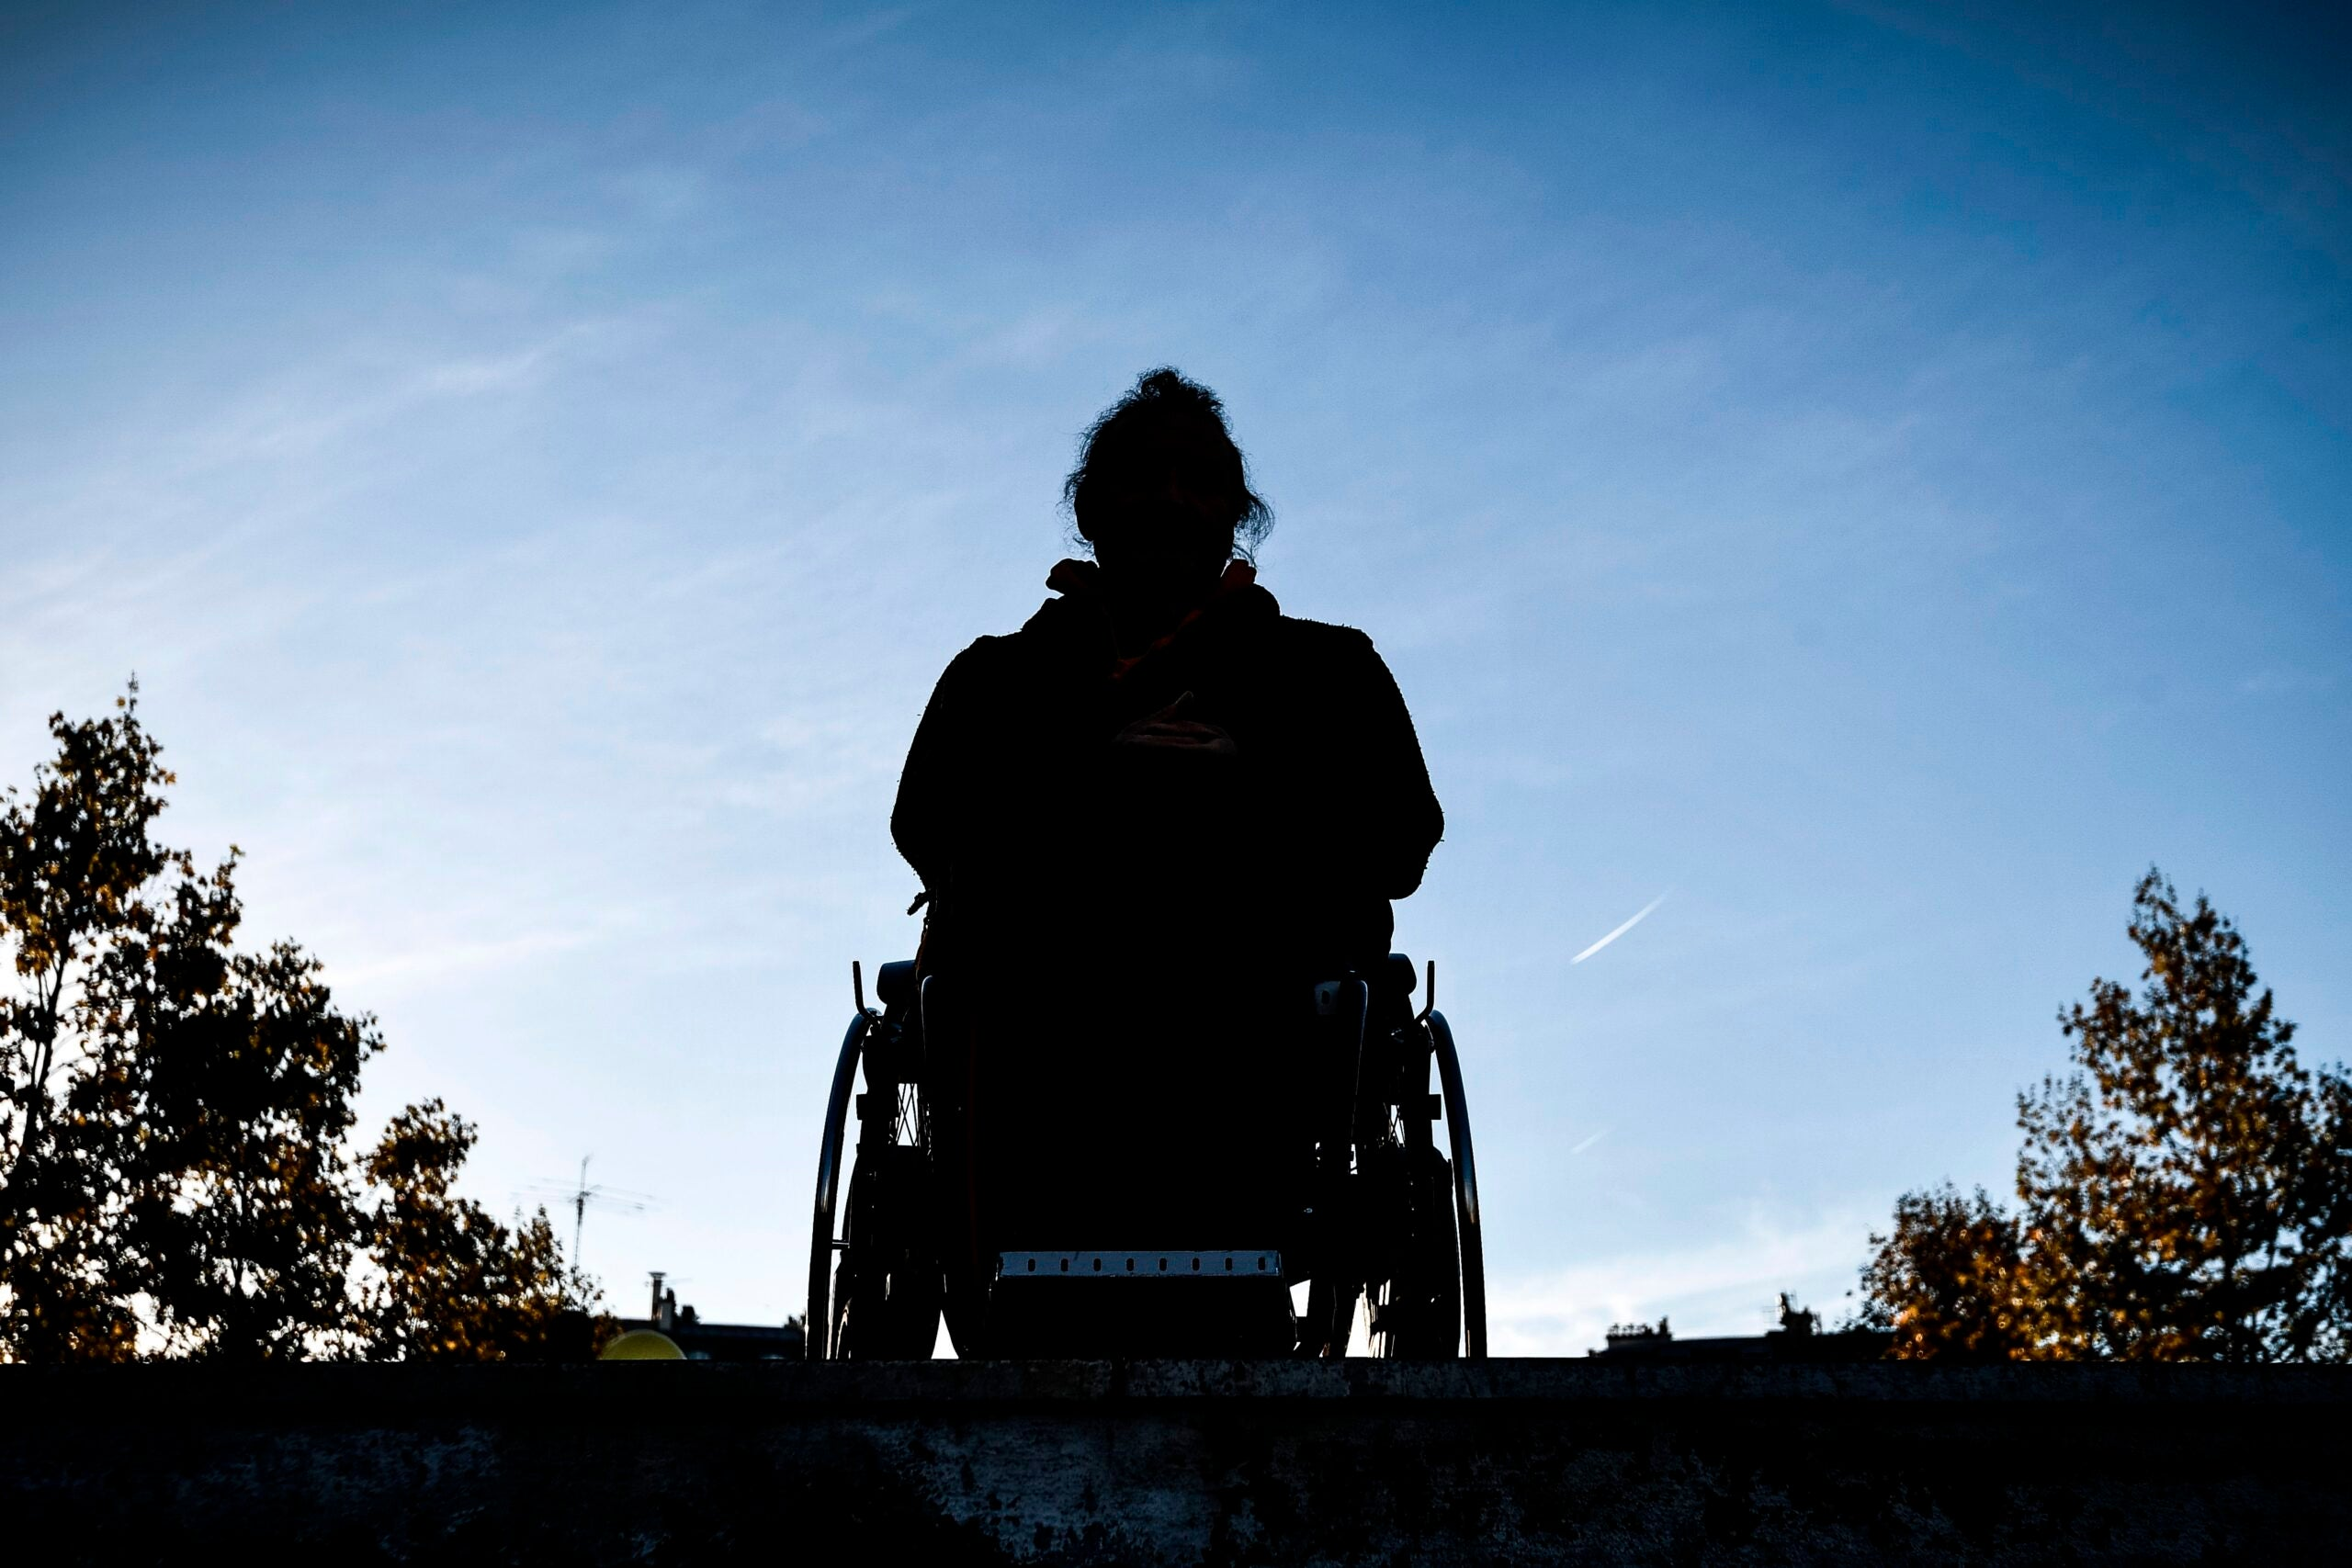 """""""There's no money for wheelchairs"""": Living with a disability in austerity Britain"""